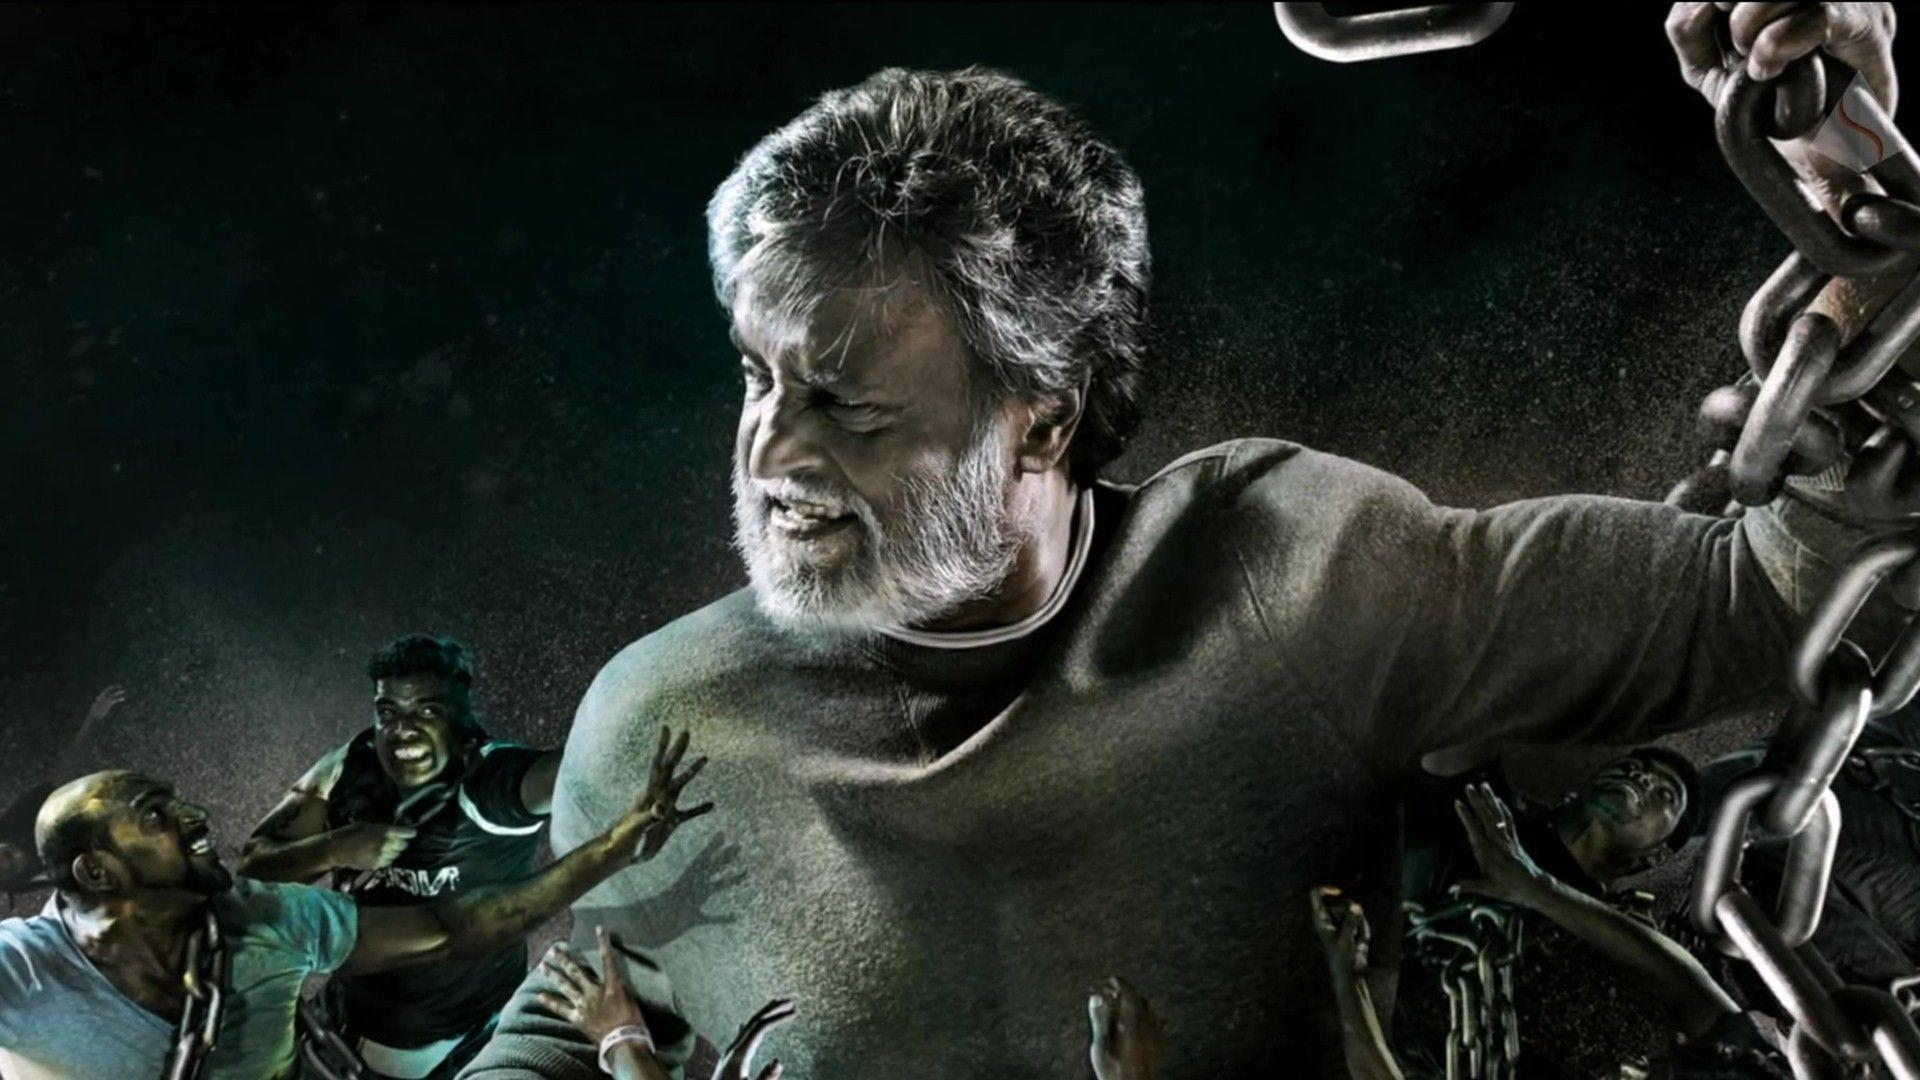 Kabali Wallpapers HD Backgrounds, Images, Pics, Photos Free ...